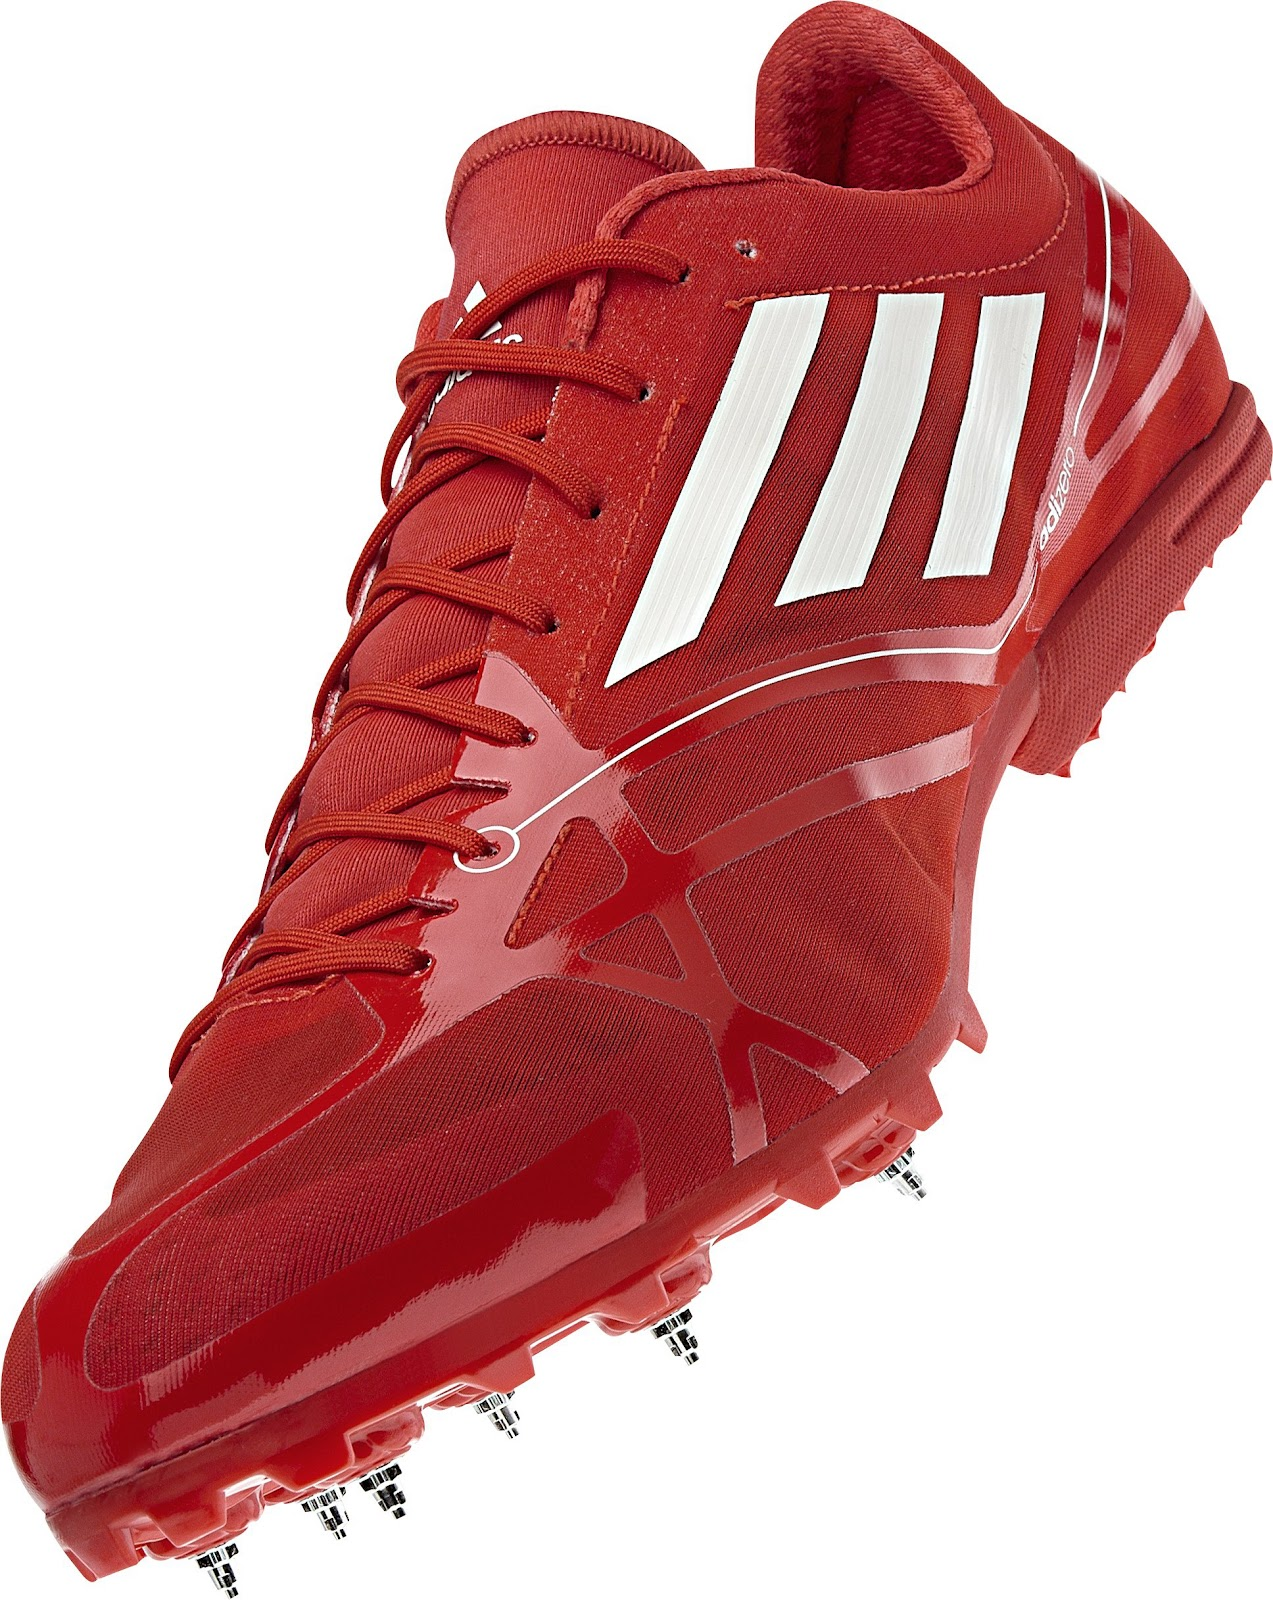 04d7a4484 adidas track and field spikes 2012